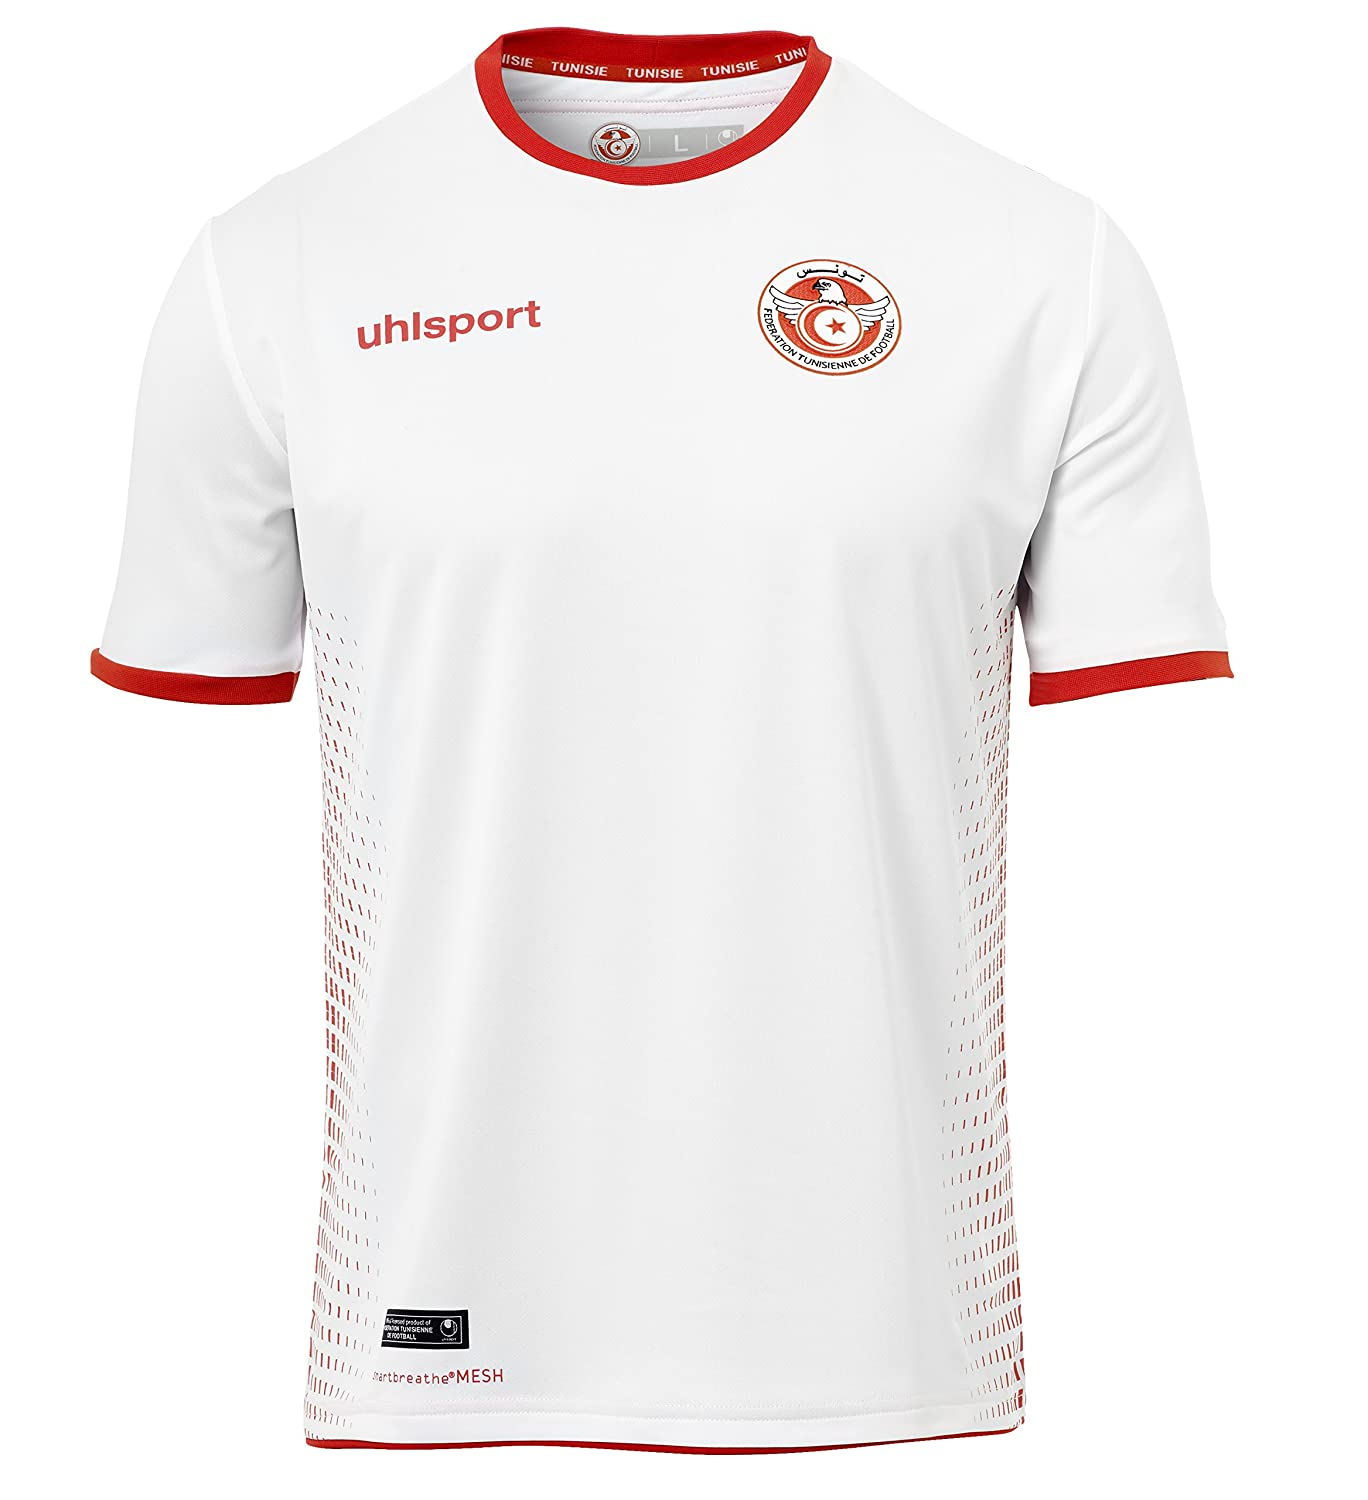 2018-2019 Tunisia Home Uhlsport Football Shirt B077SJHQYP Medium Adults 38-40